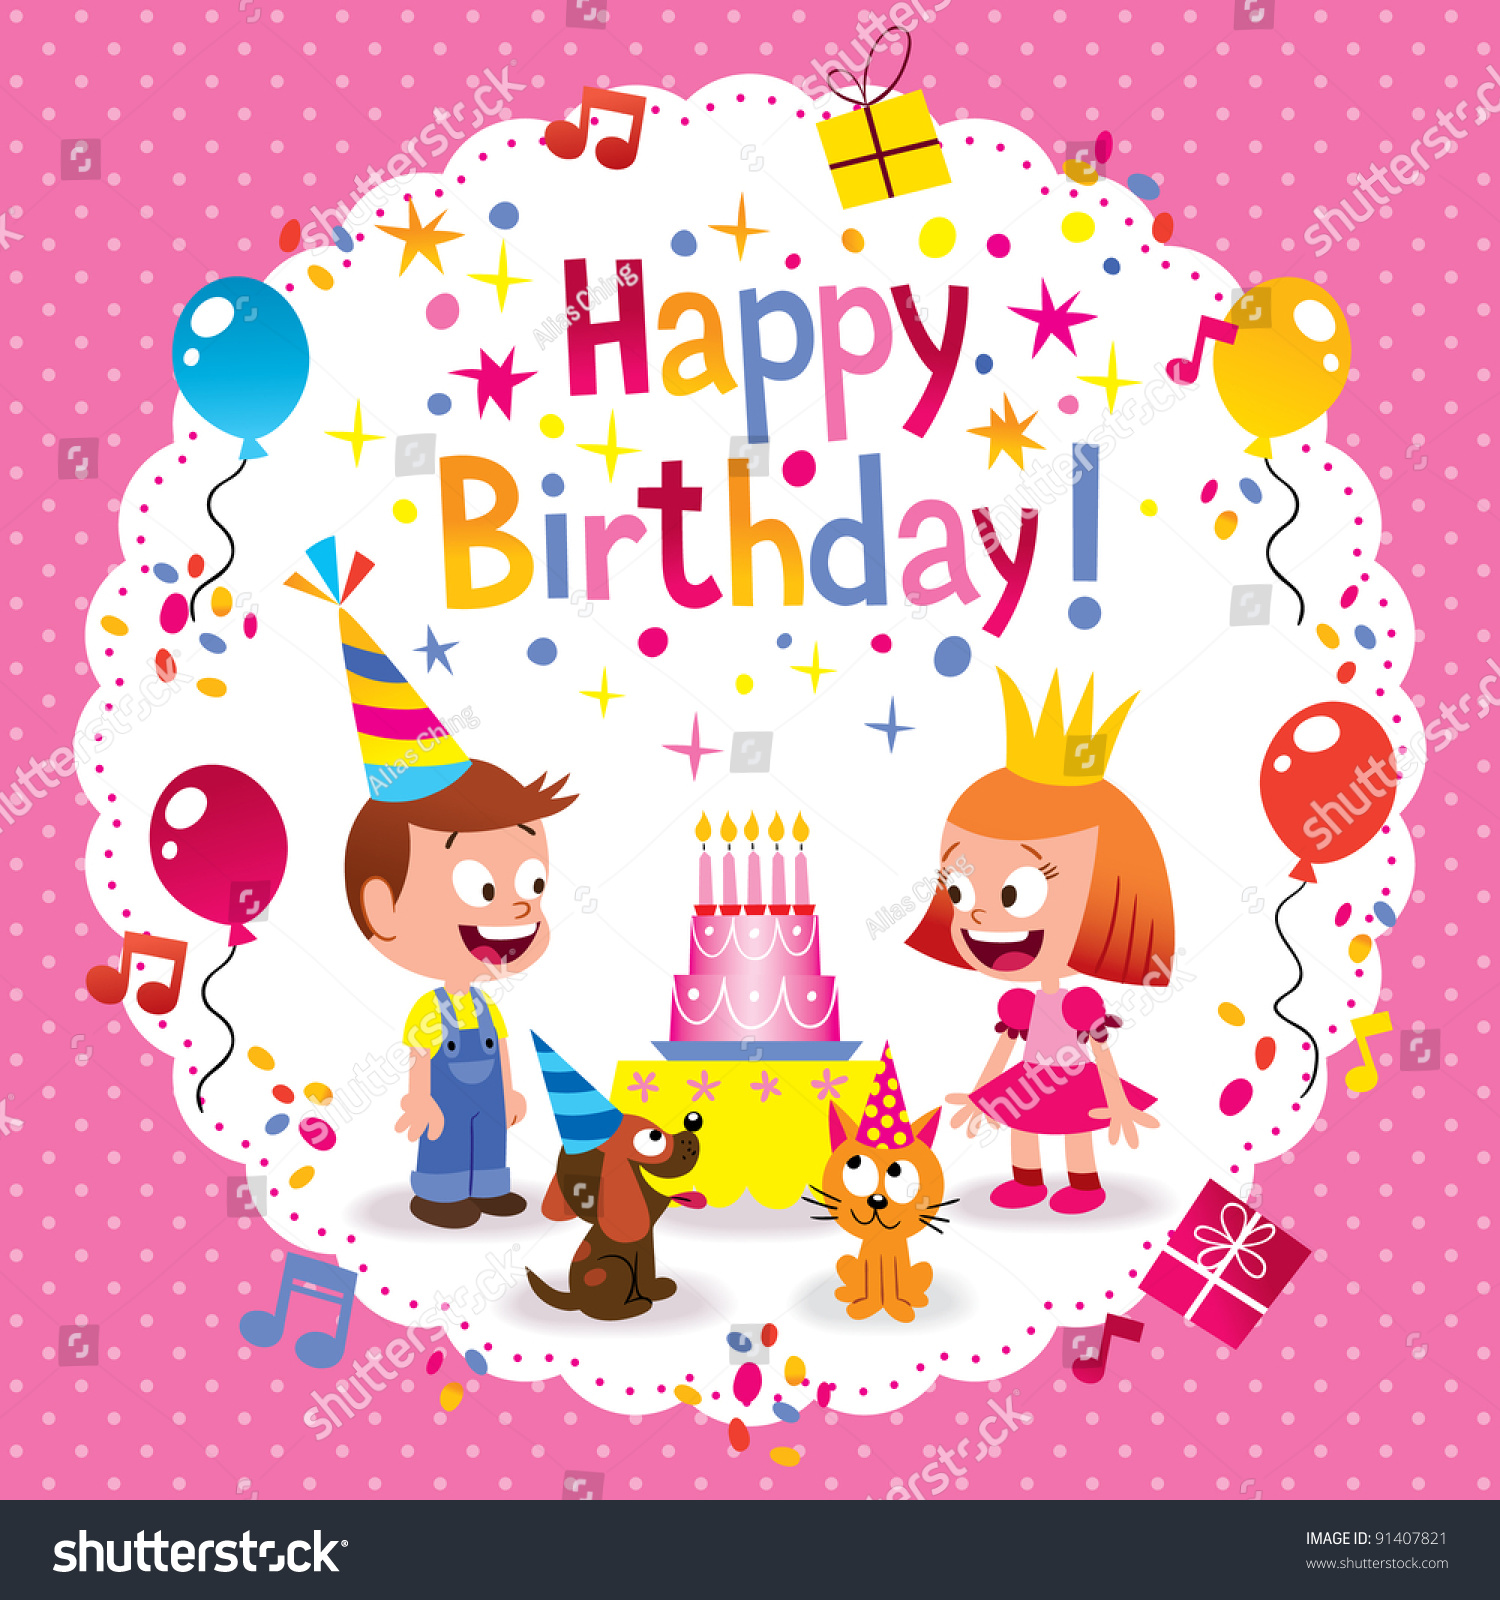 Happy Birthday Cute Kids Card Vector 91407821 Shutterstock – Cute Birthday Cards for Kids